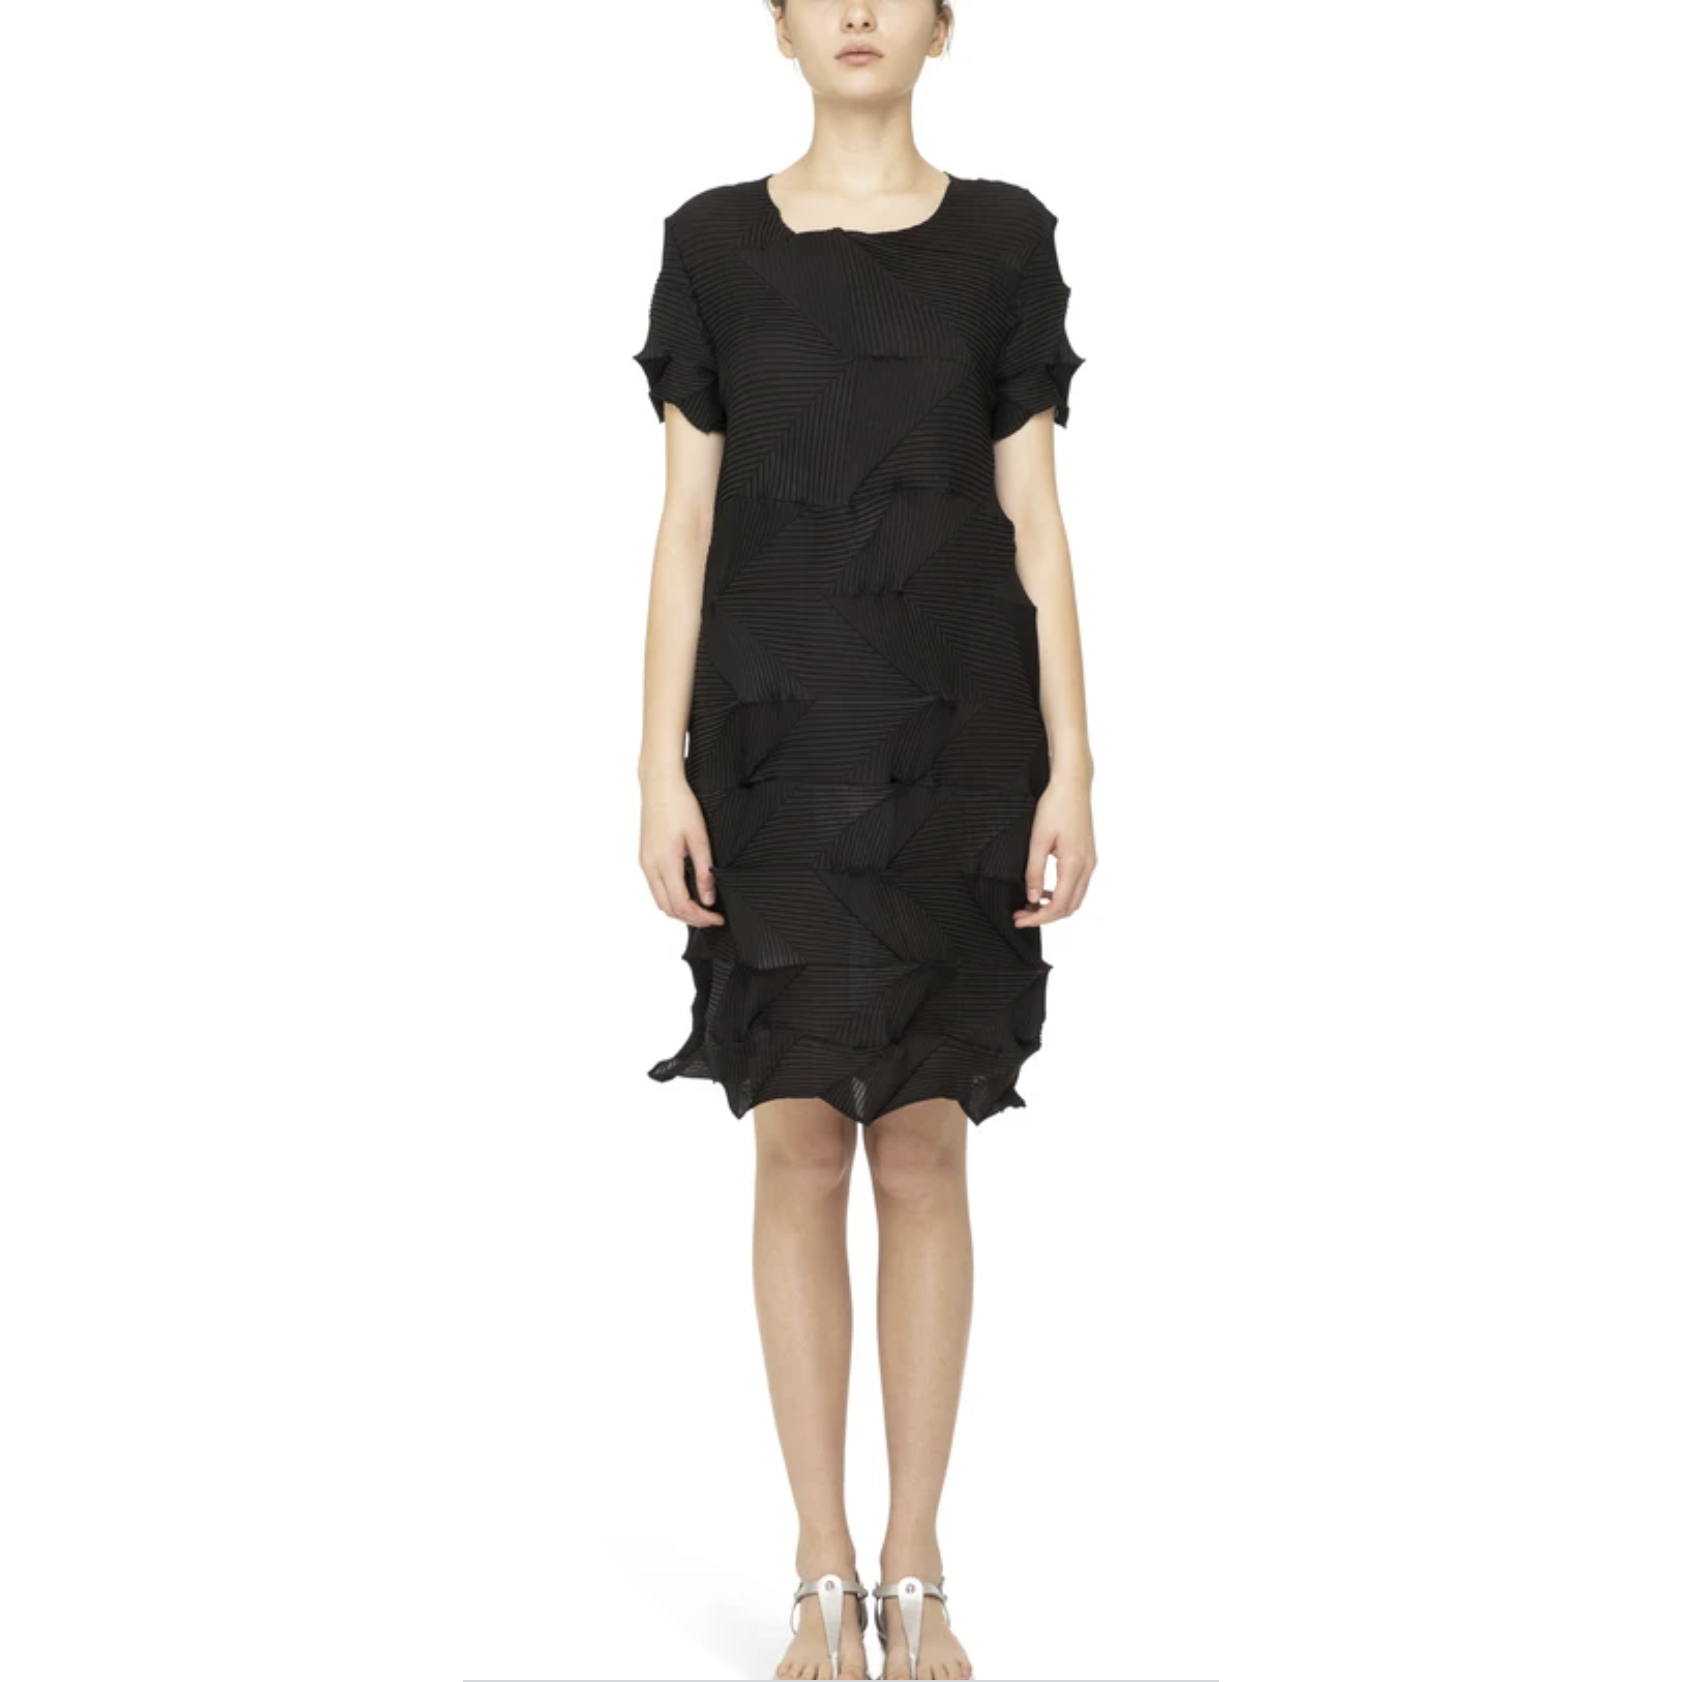 Alquema Annie Dress in Black